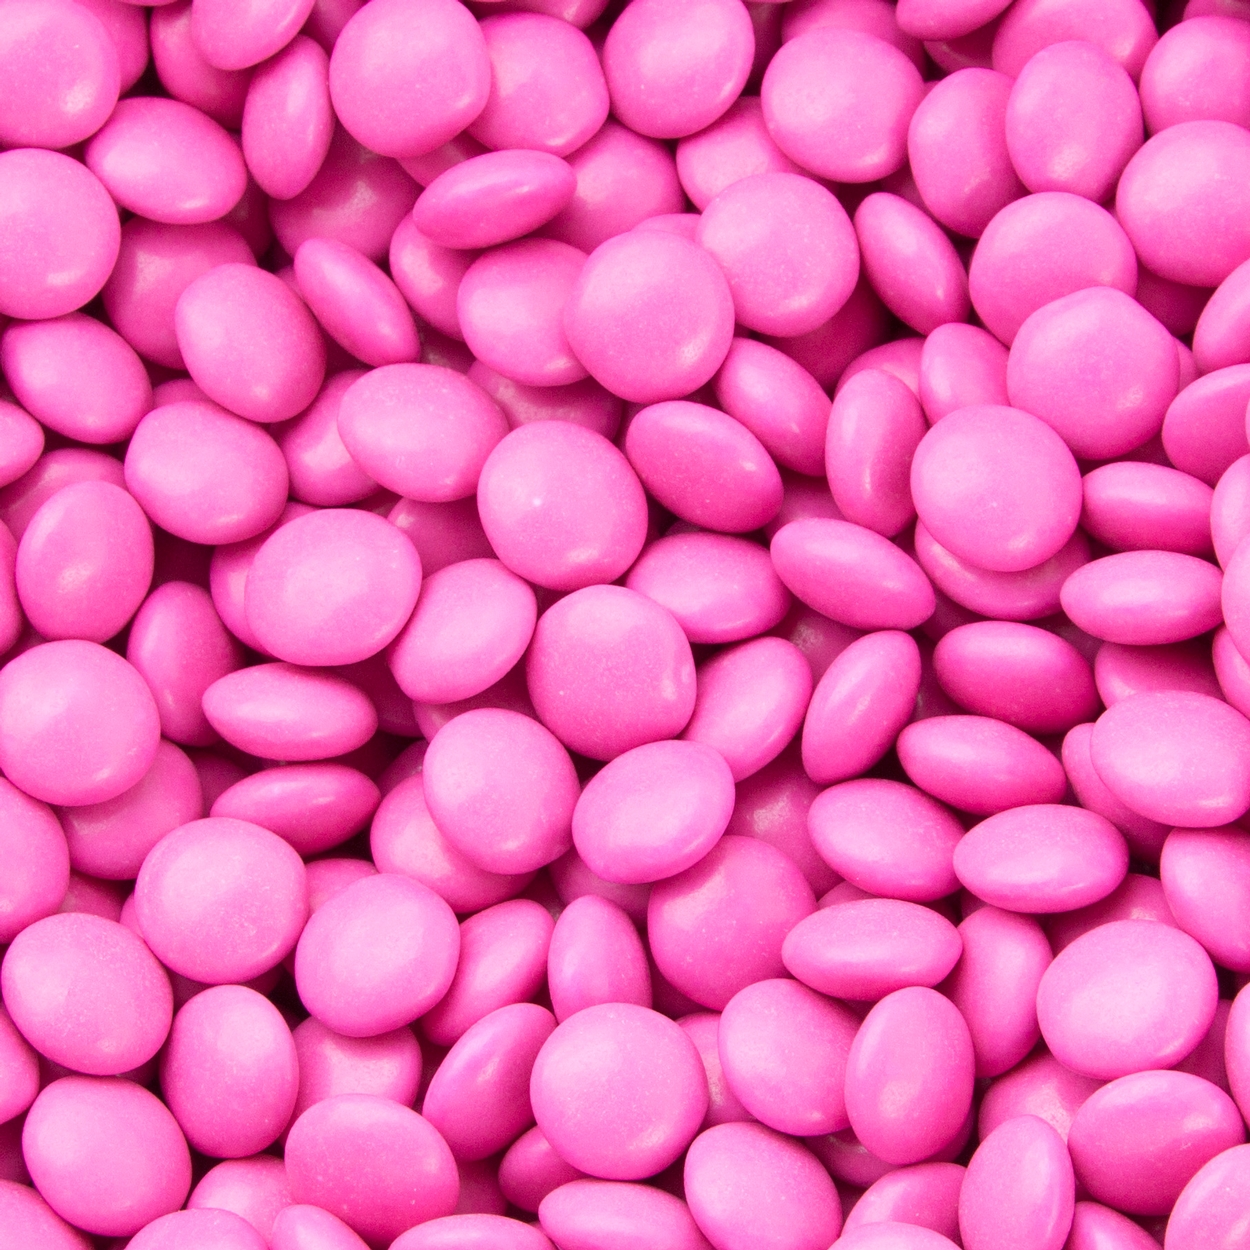 Hot Pink Chocolate Lentils Gems • Chocolate Candy Buttons ...